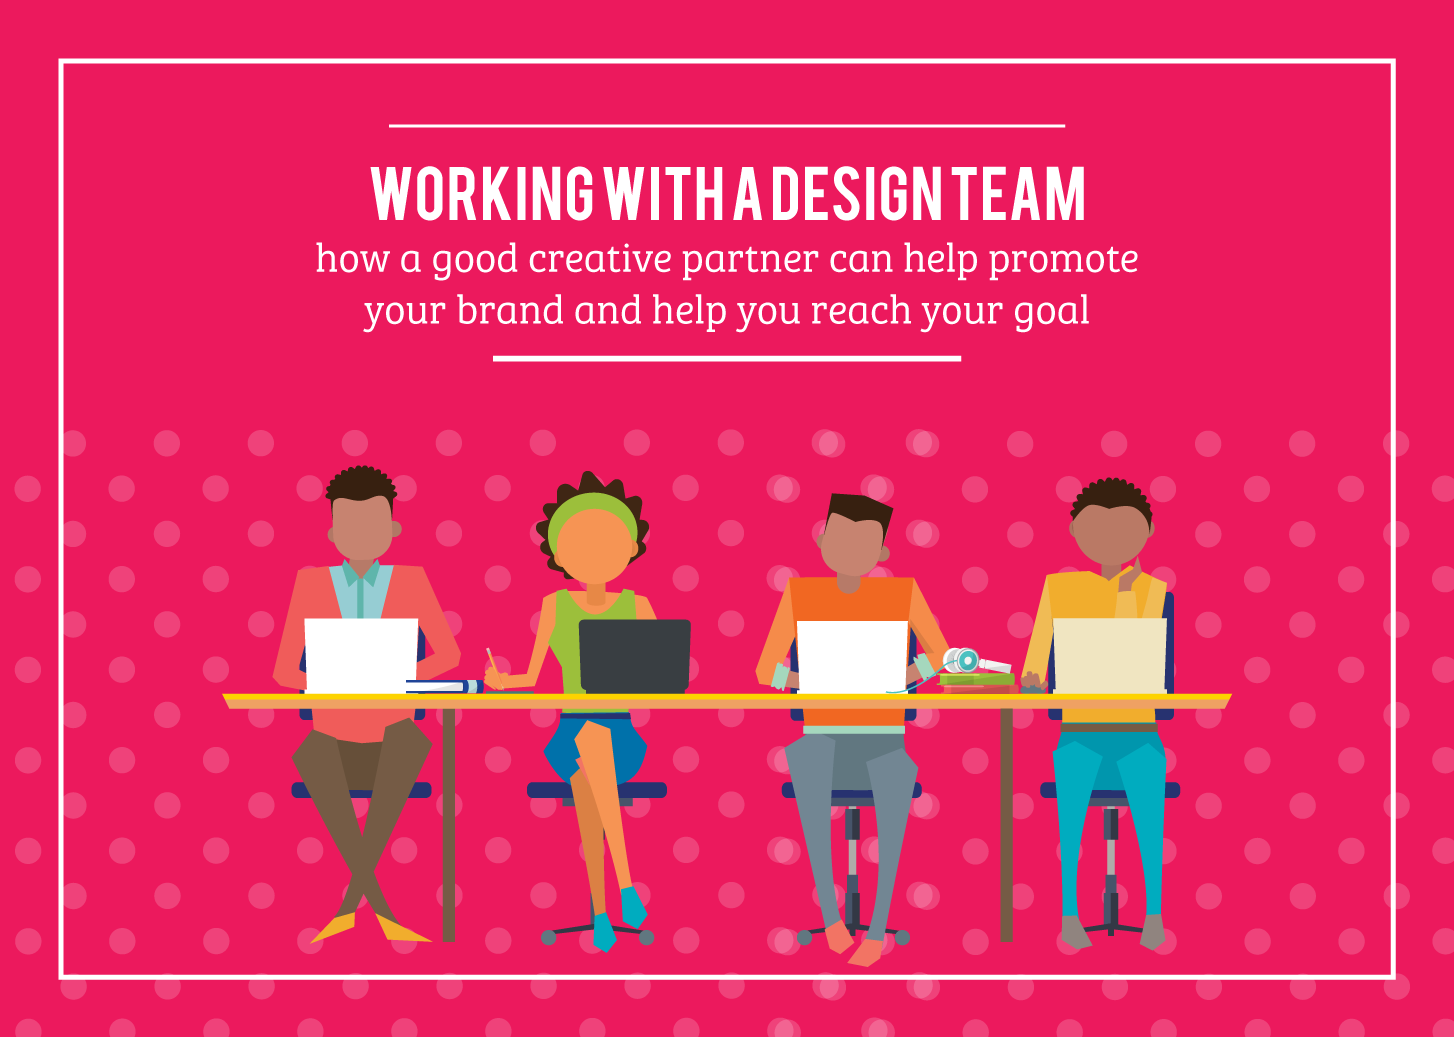 Working with a Creative team – how a good creative partner can help promote your brand and help you reach your goal